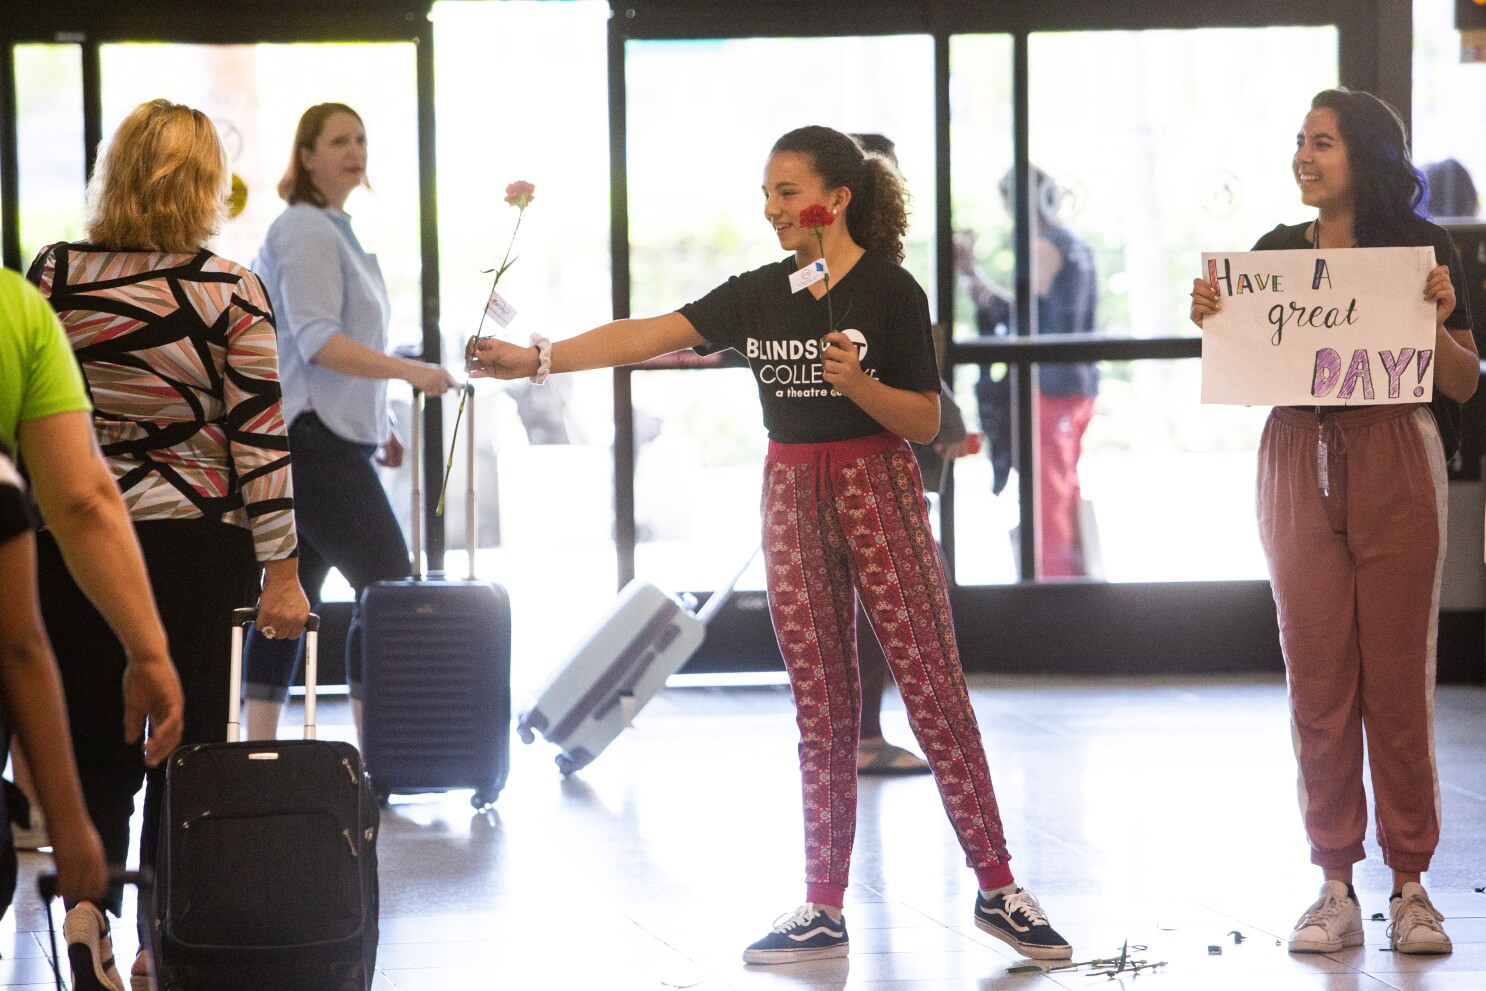 Latest destination for Blindspot Collective's innovative theater: San Diego International Airport